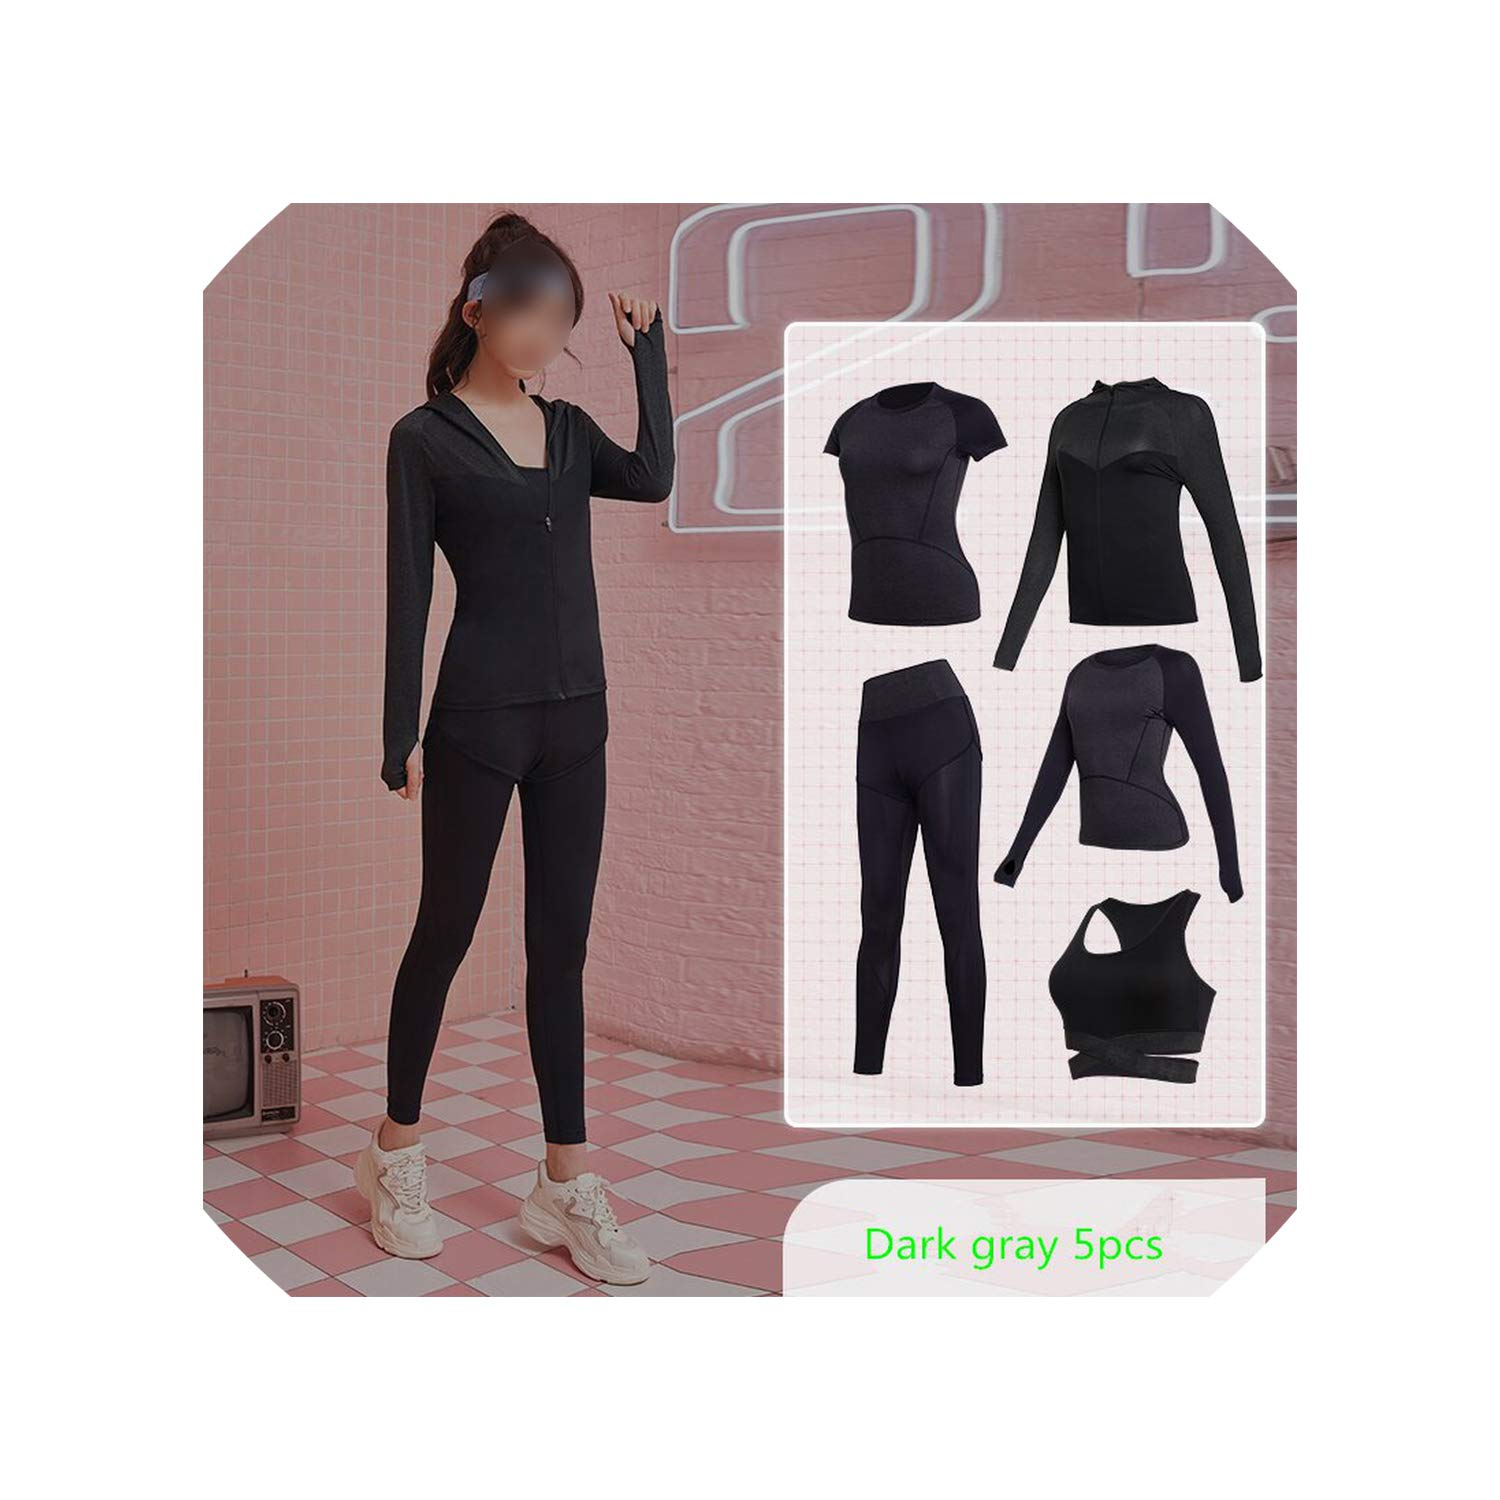 Bats 4379 WBeauty Women's Yoga Clothes Set Running Tights Sportswear Quick Dry